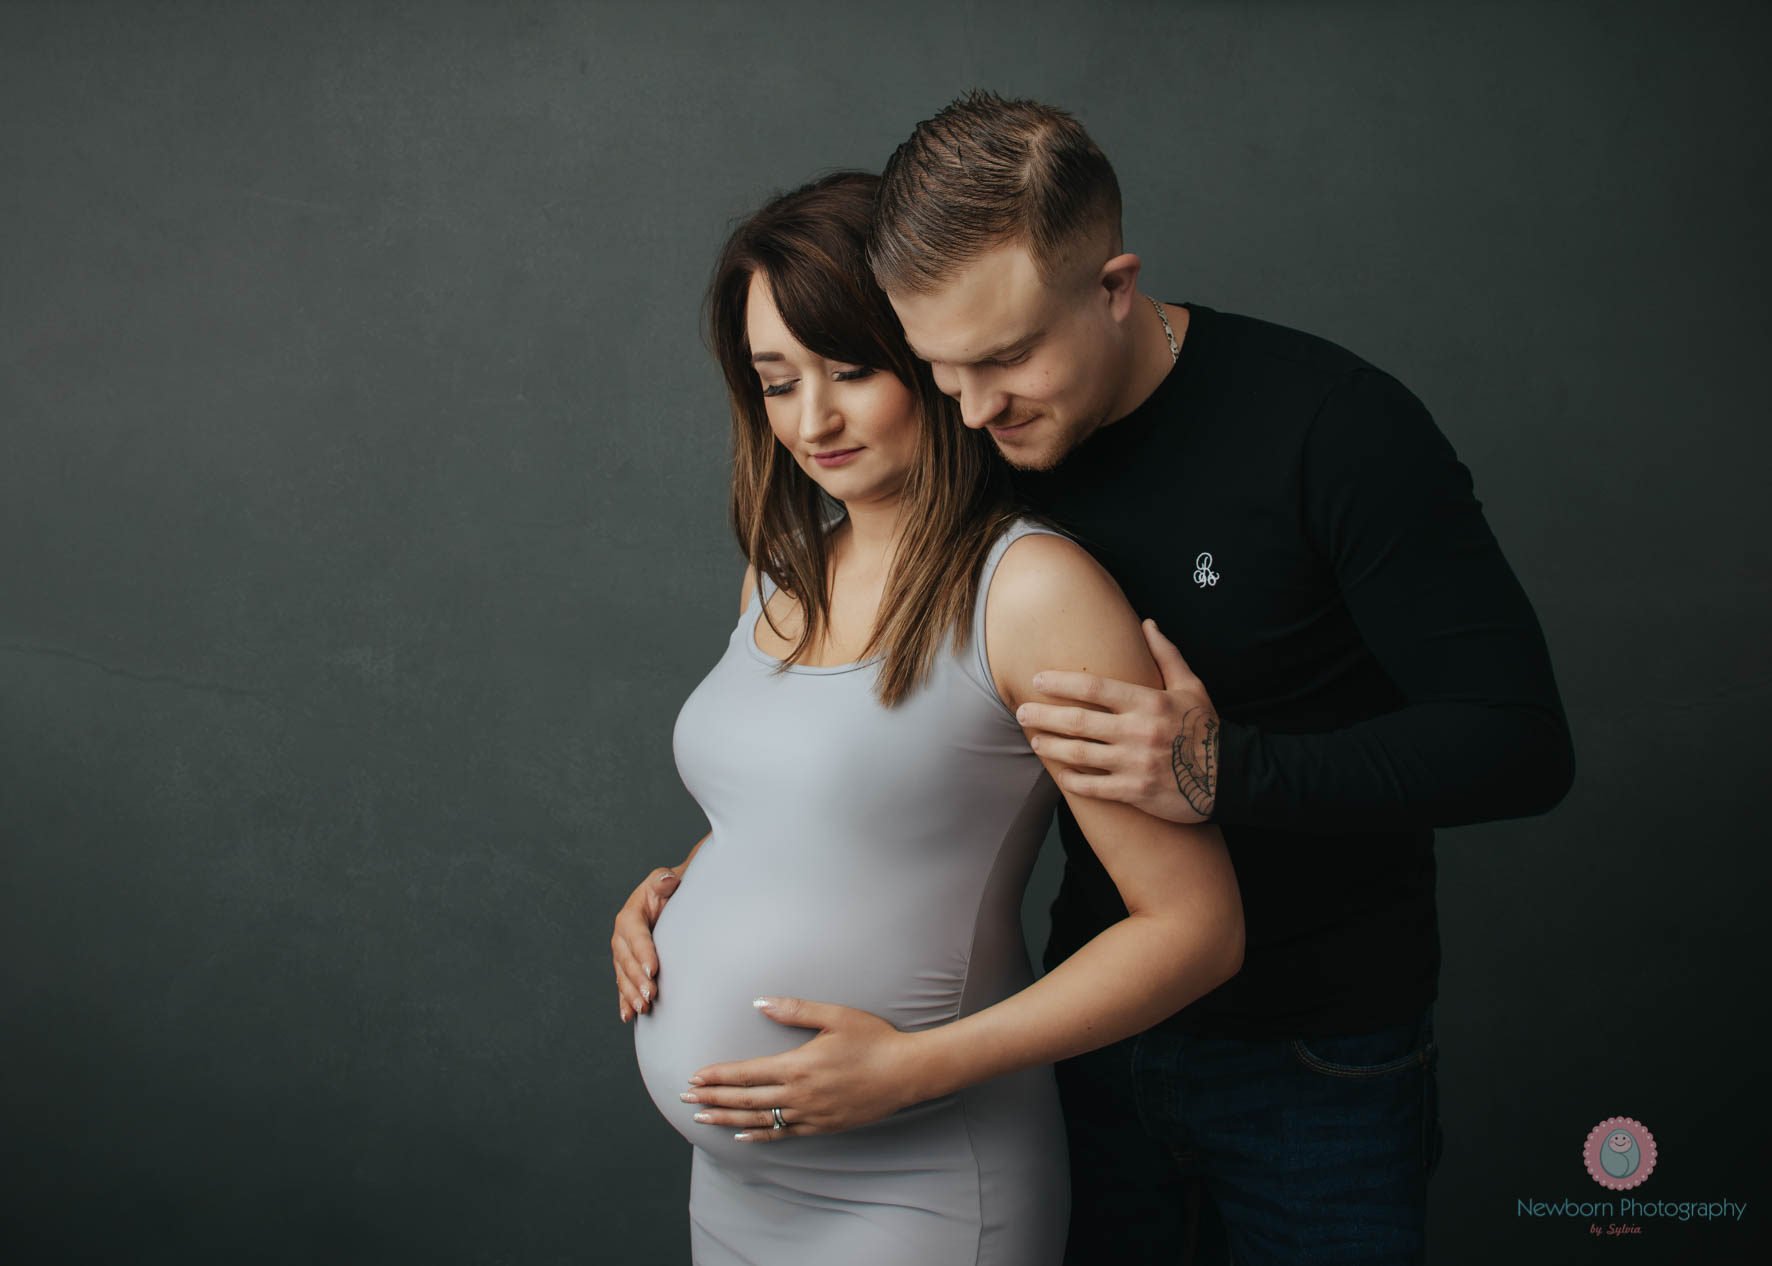 Pregnancy photography near me